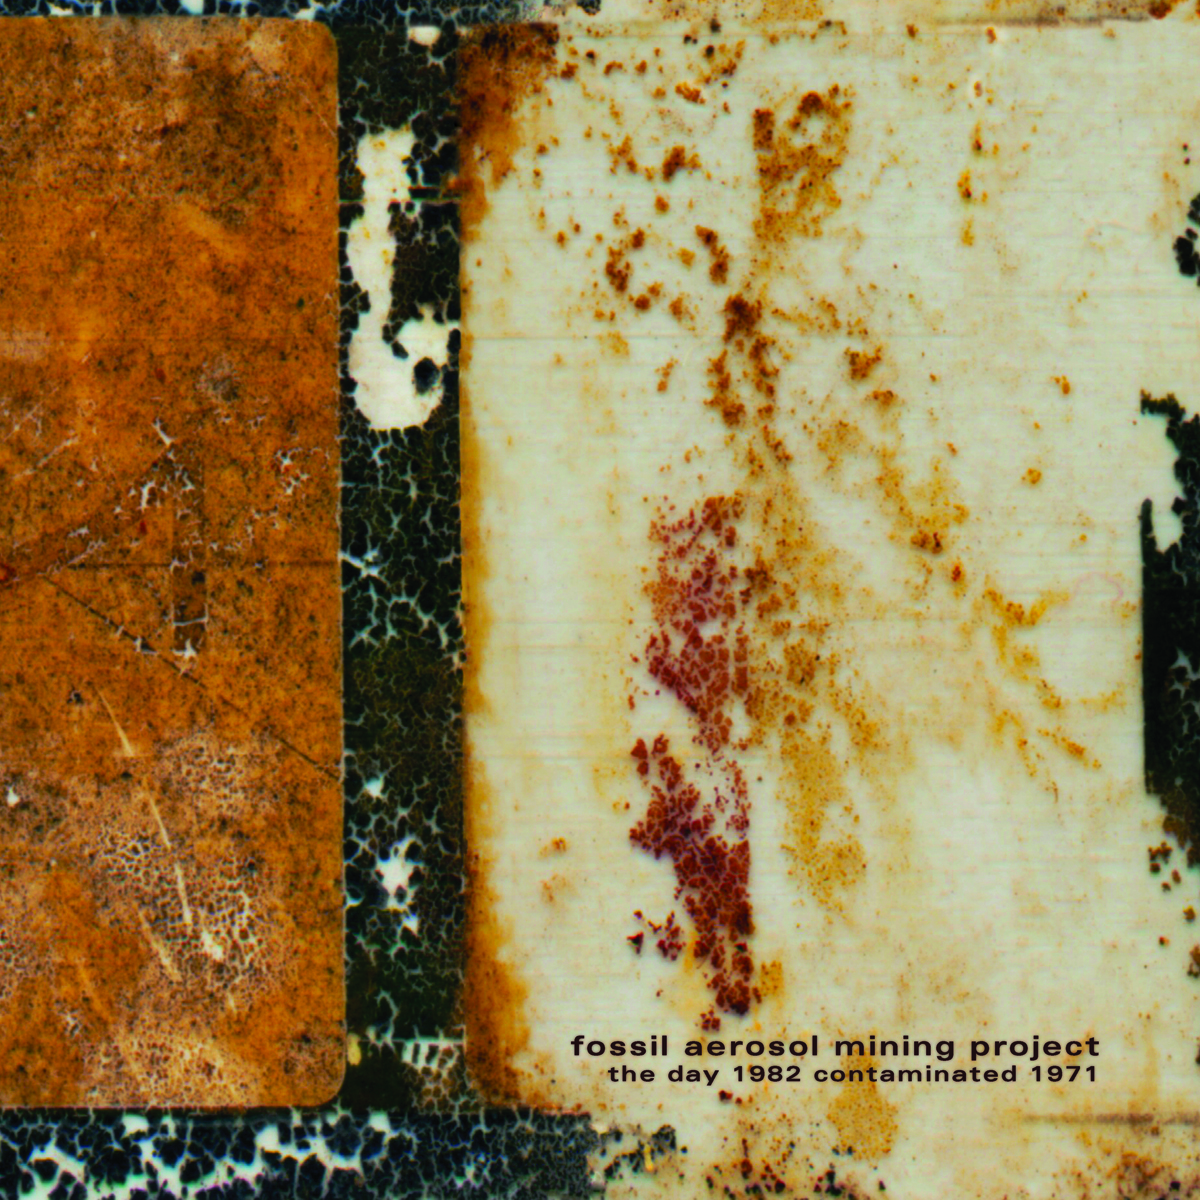 Fossil Aerosol Mining Project ~ The Day 1982 Contaminated1971